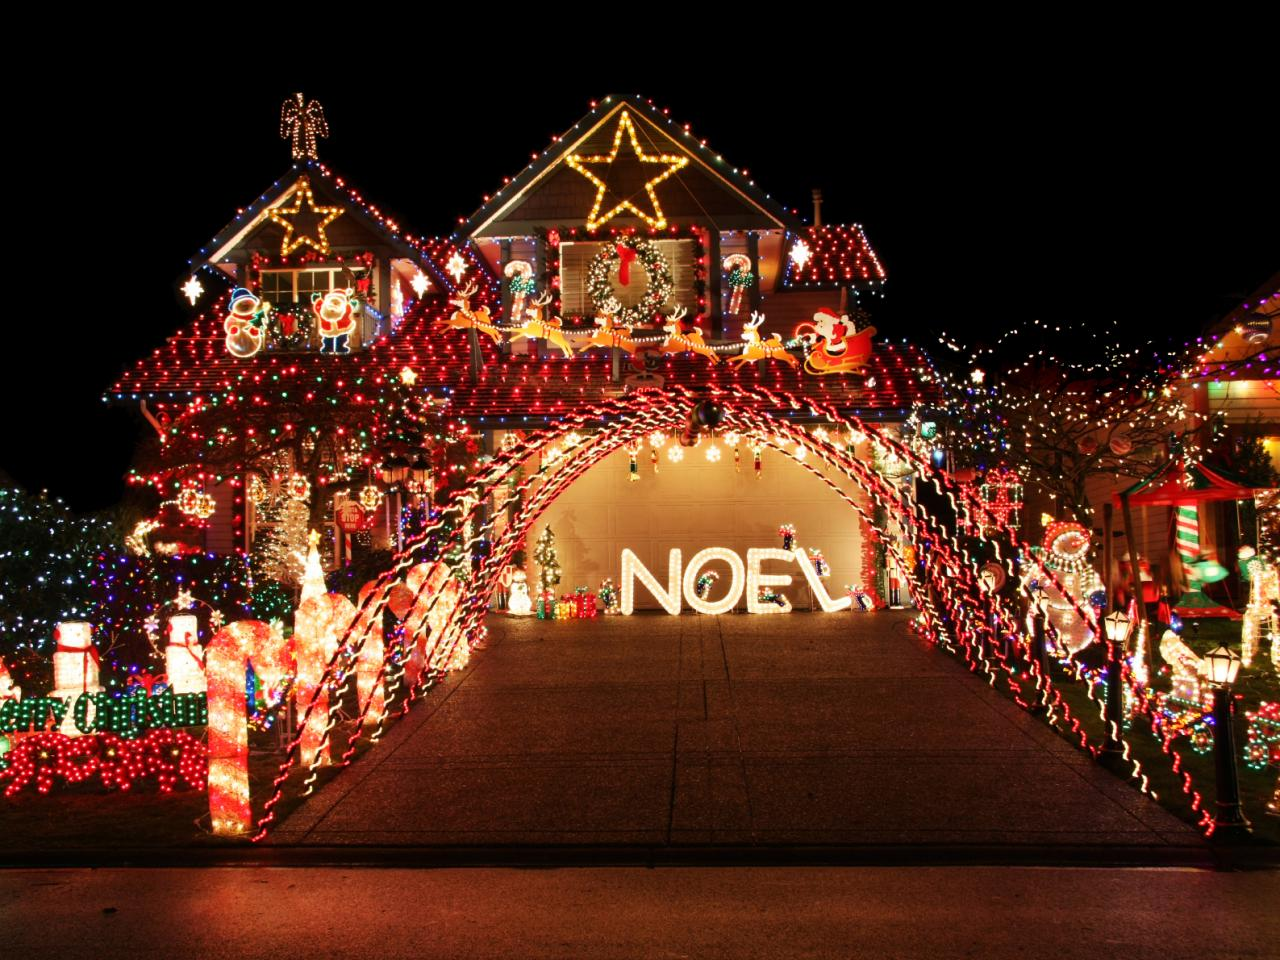 Chrismas Houses Decorated